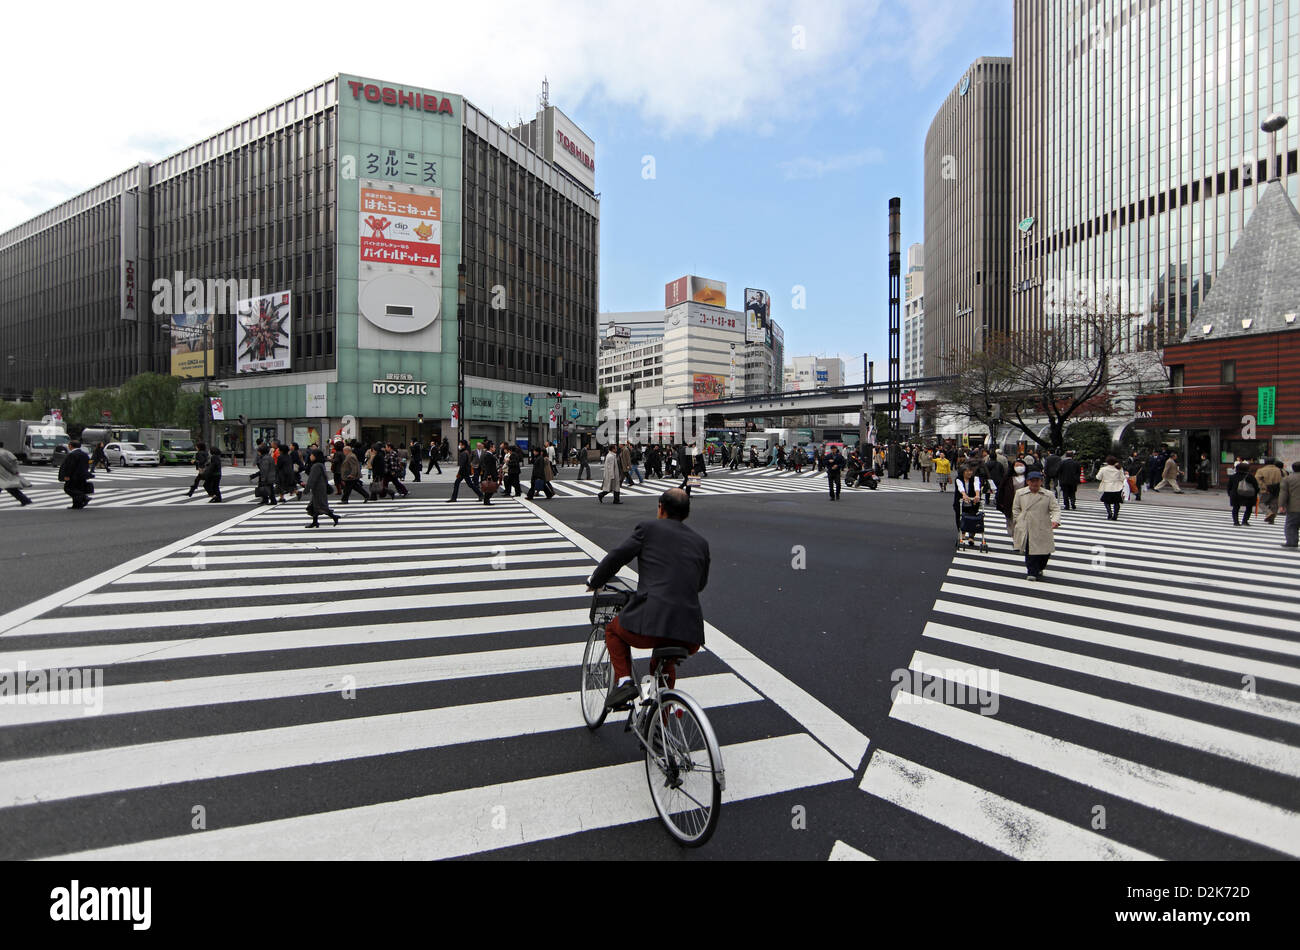 Tokyo, Japan, zebra stripes on a road junction in the Ginza district - Stock Image